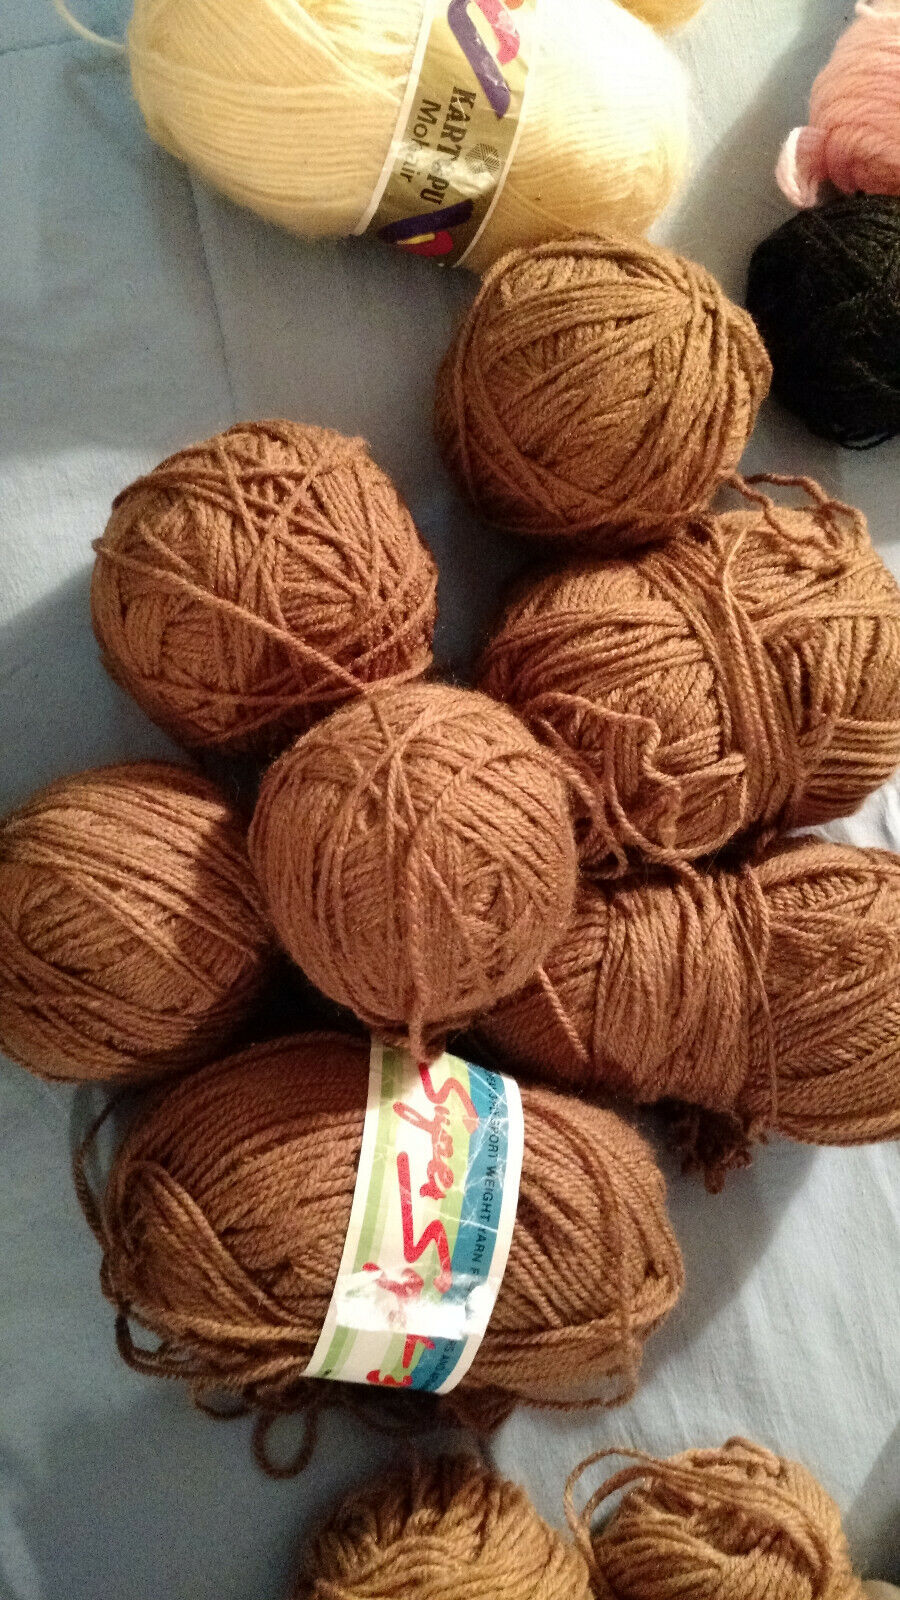 Funny Supersoft Yarn Collection - $1.00